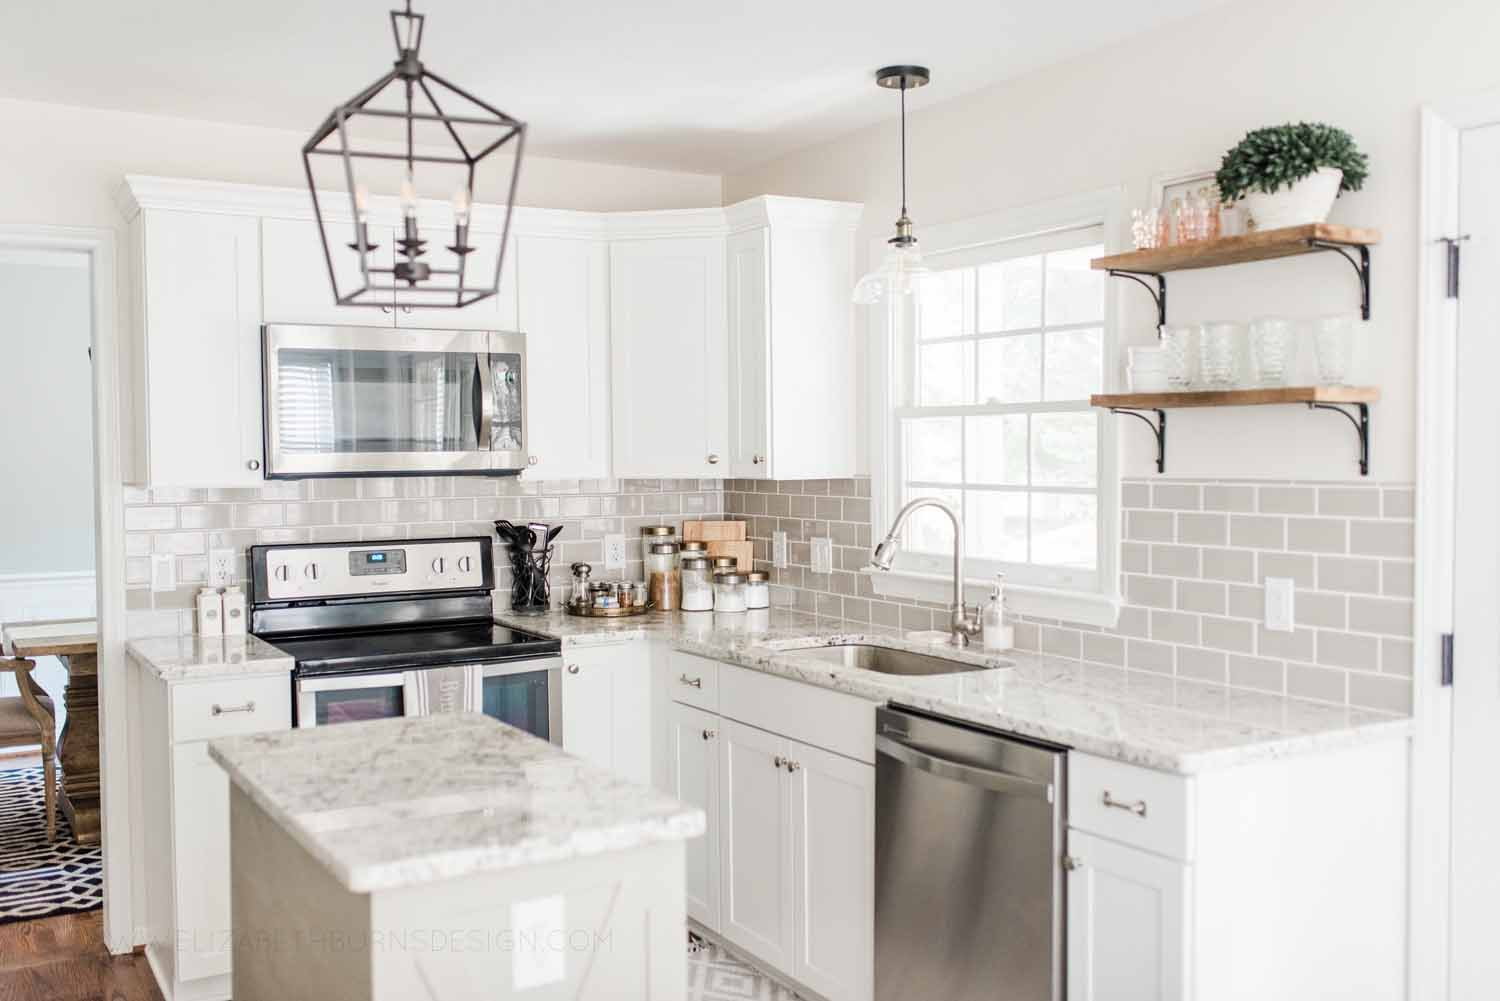 Elizabeth Burns Design Raleigh Interior Designer 1990s house remodel before and after Benjamin Moore Classic Gray 1548 Arcadia White Shaker Cabinets Gray Subway Tile Backsplash (12).jpg